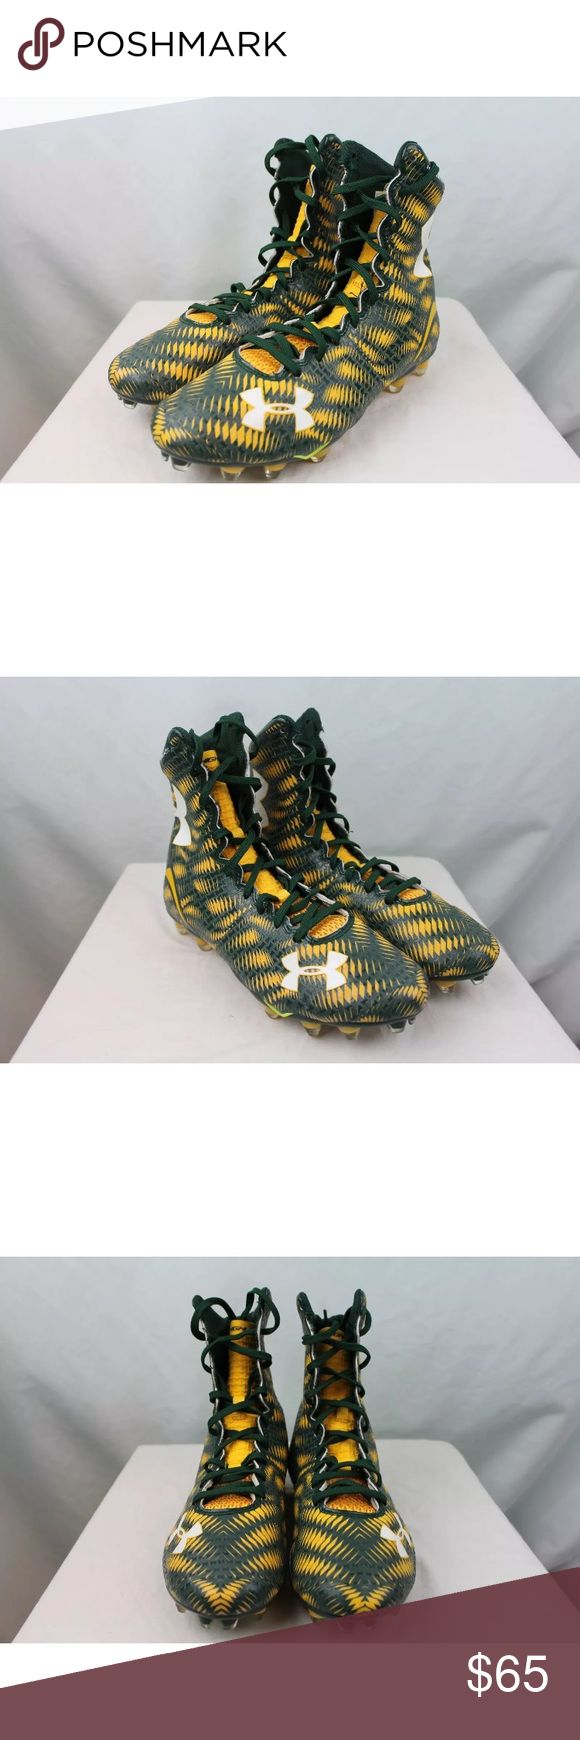 Under Armour High Top Cleats NEW Under Armour Highlight MC Mens High Top Green Yellow Football Cleats Size 8.5  New without box or tags mens Under Armour high top football cleats. Green and yellow, size mens US 8.5 Under Armour Shoes Athletic Shoes